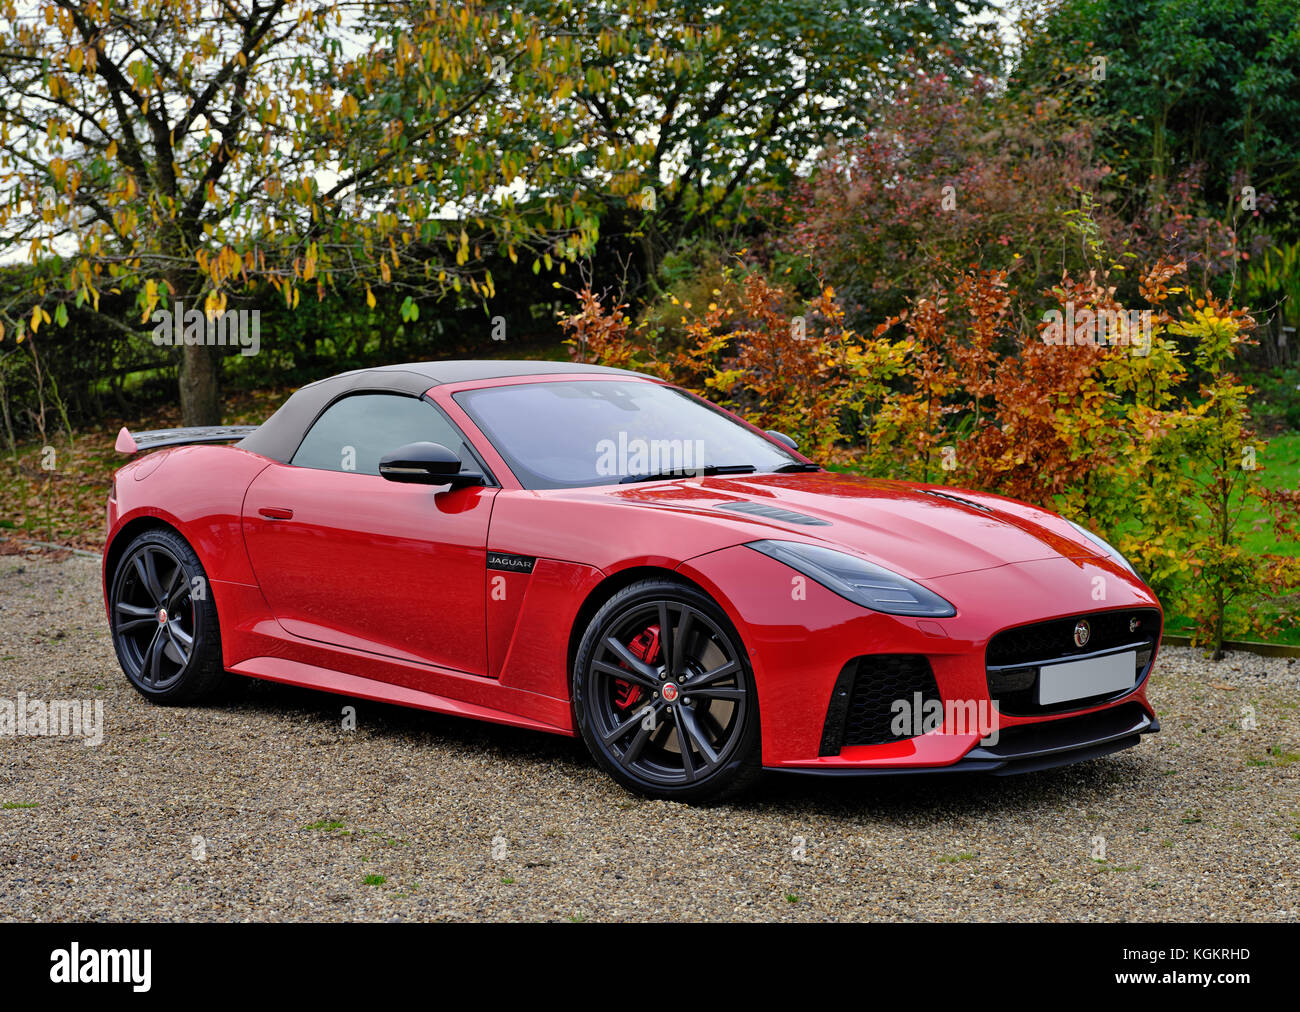 A Red Jaguar F Type Svr Sports Car In A Country Driveway Stock Photo Alamy